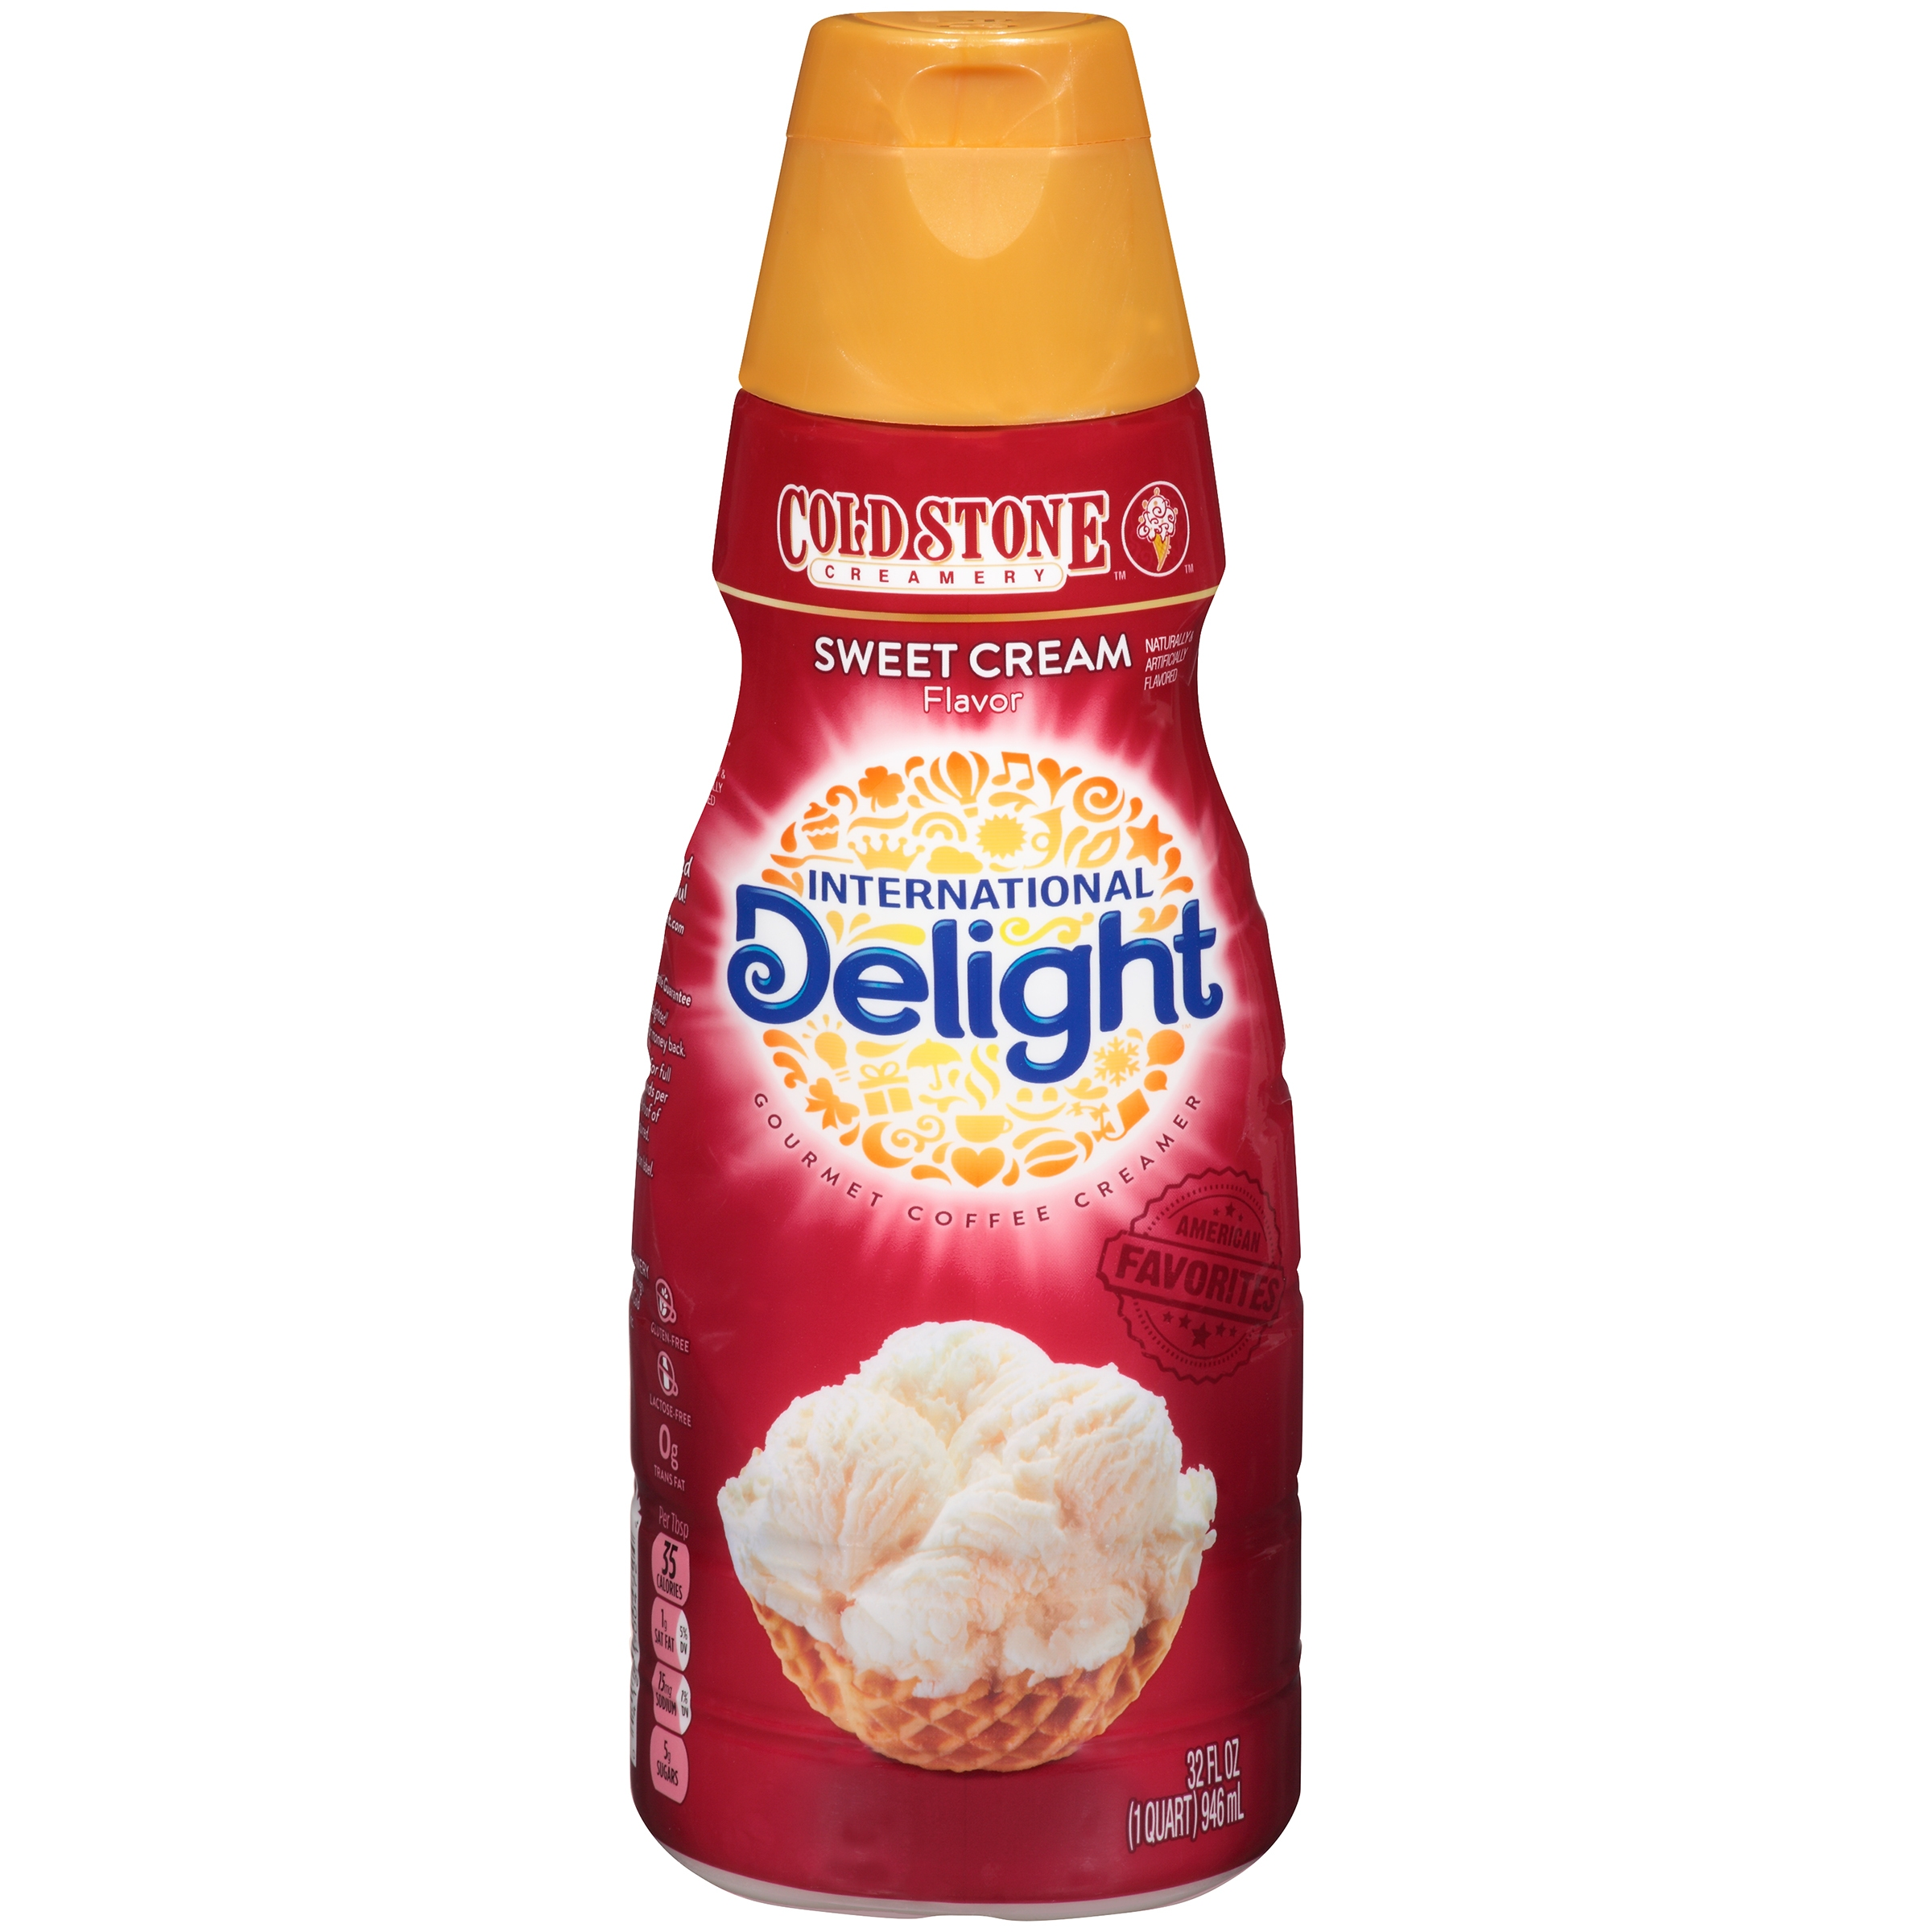 International Delight Cold Stone Creamery Sweet Cream, 32 oz